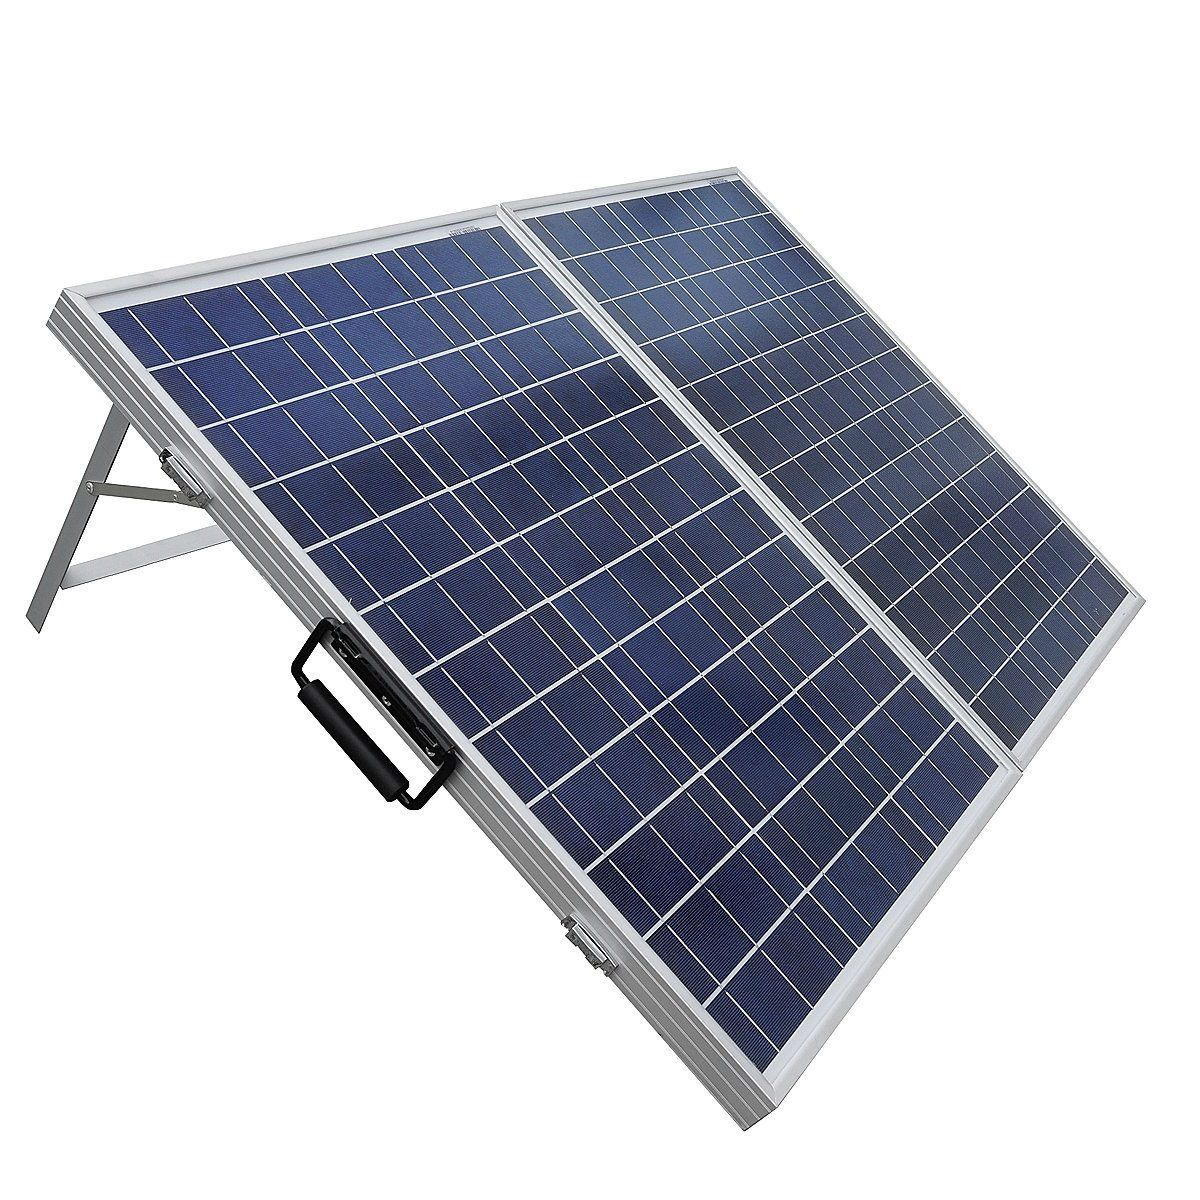 100 Watt Portable Folding Solar Panel 12v Battery Charger With Charge Controller Solar Panels Best Solar Panels Solar Panels For Home